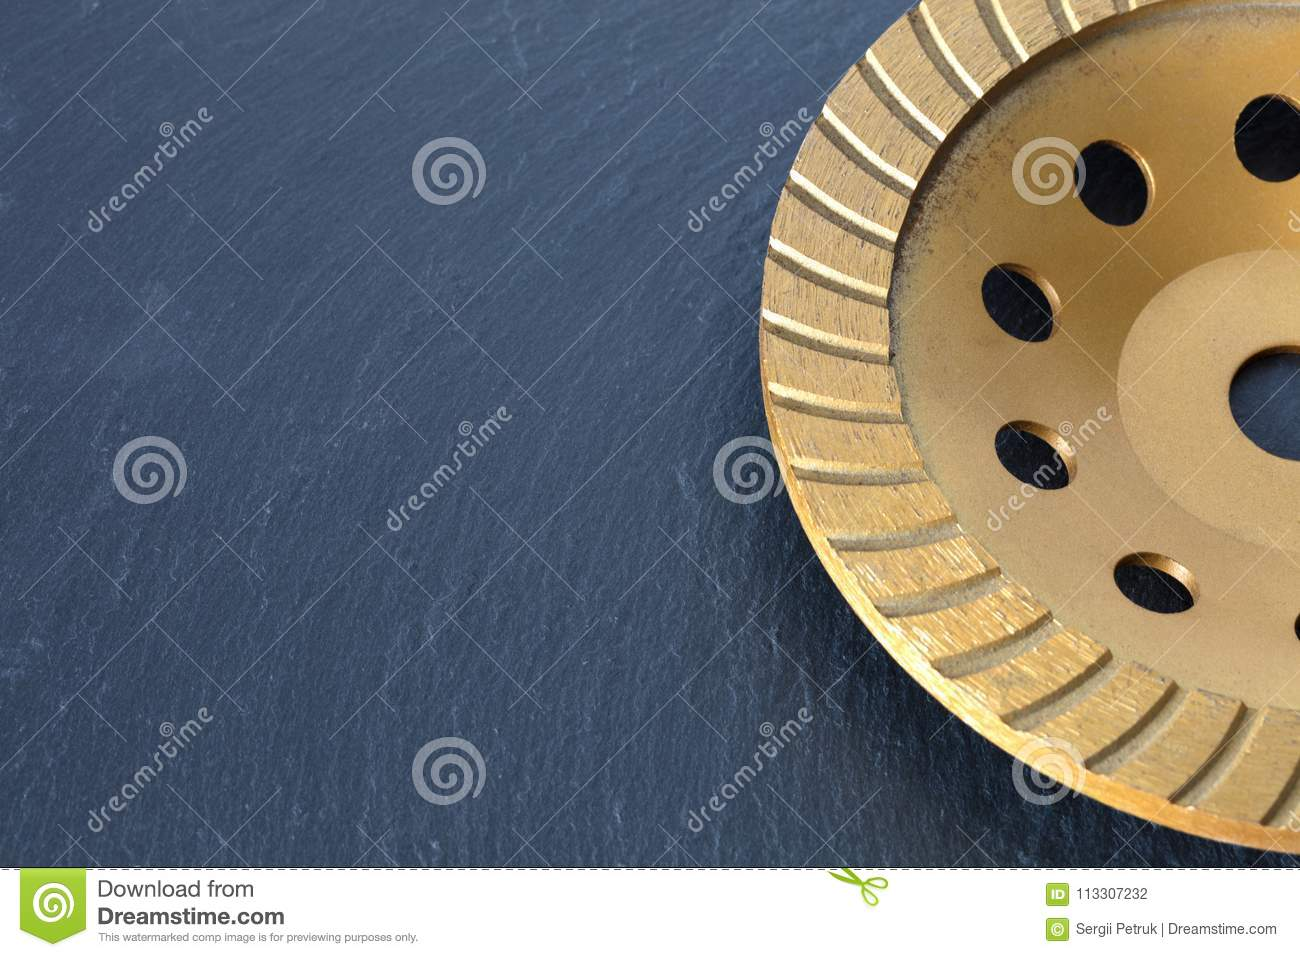 Part of the diamond grinding wheel on a gray granite background.